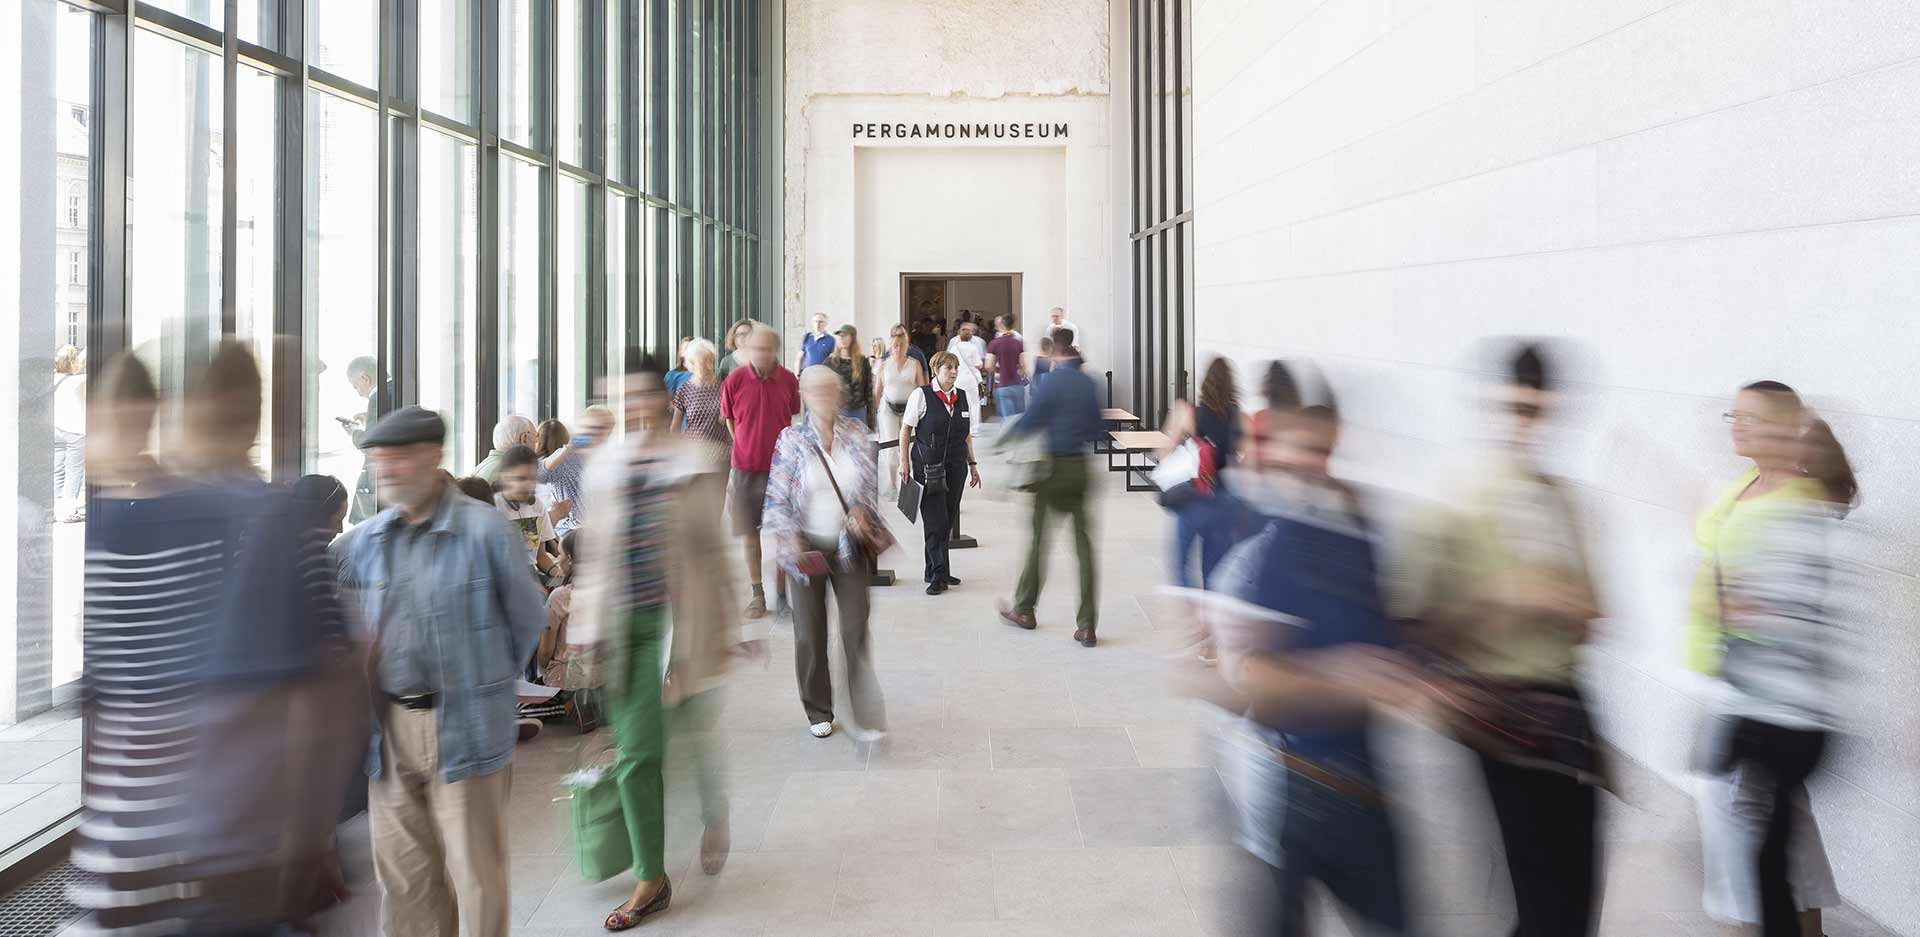 The Staatliche Museen zu Berlin Welcome More than 4 Million Visitors in 2019